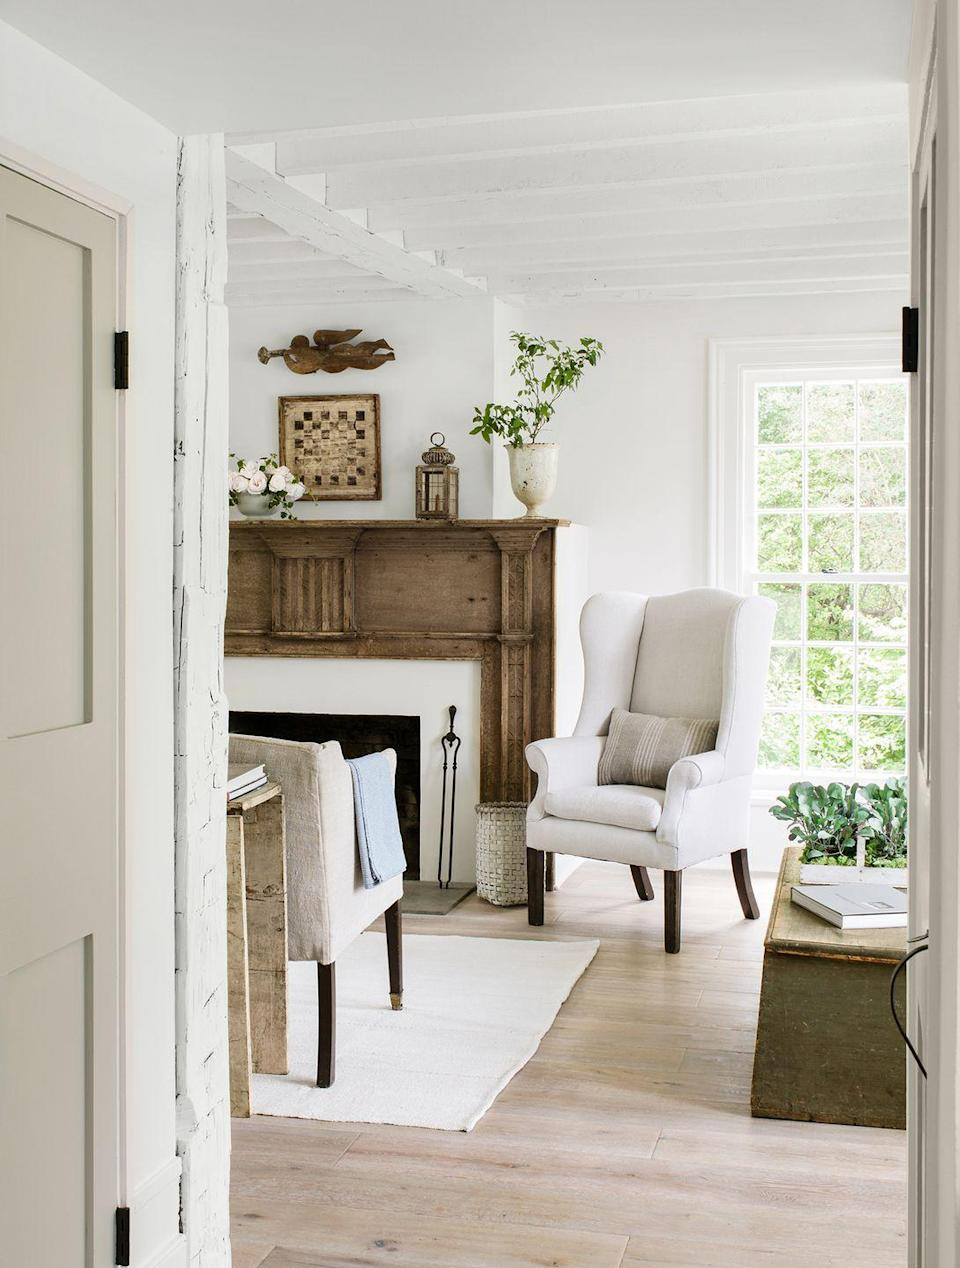 <p>Enhance a wooden mantel with complementary accessories, like a vintage-inspired lantern, to add character to your space. </p>